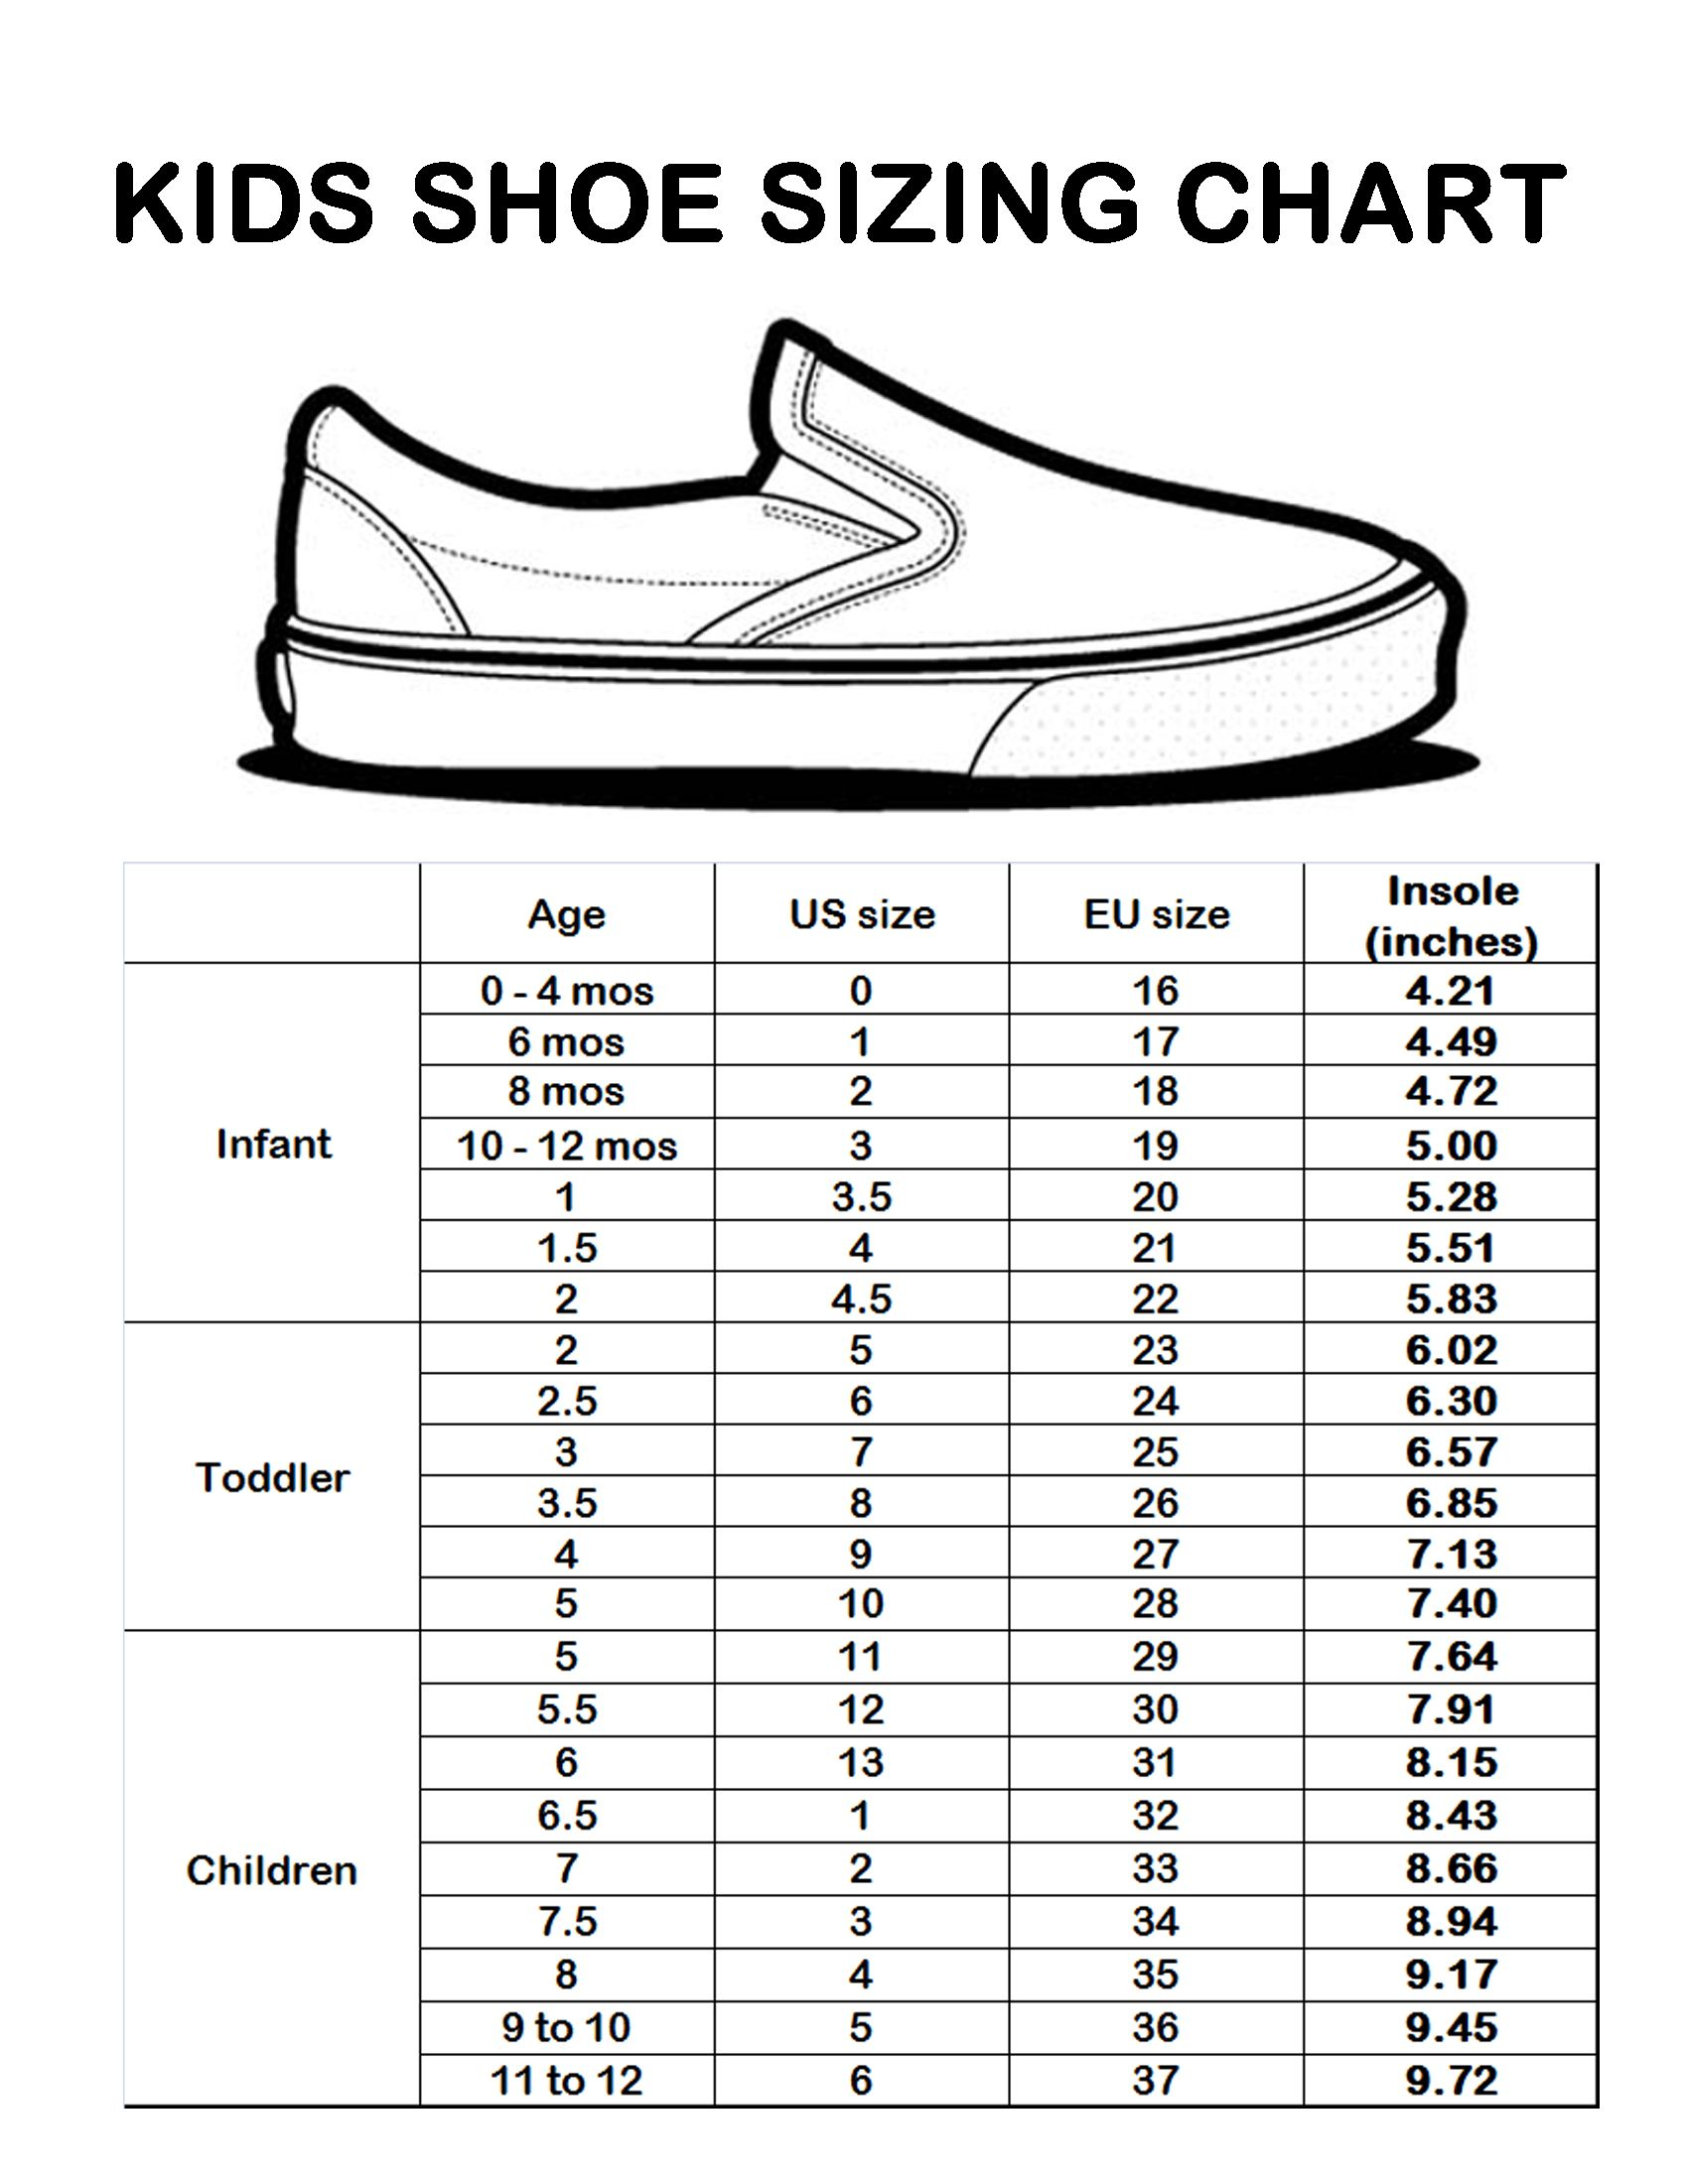 Another shoe size chart for the kids  Although the age won't match